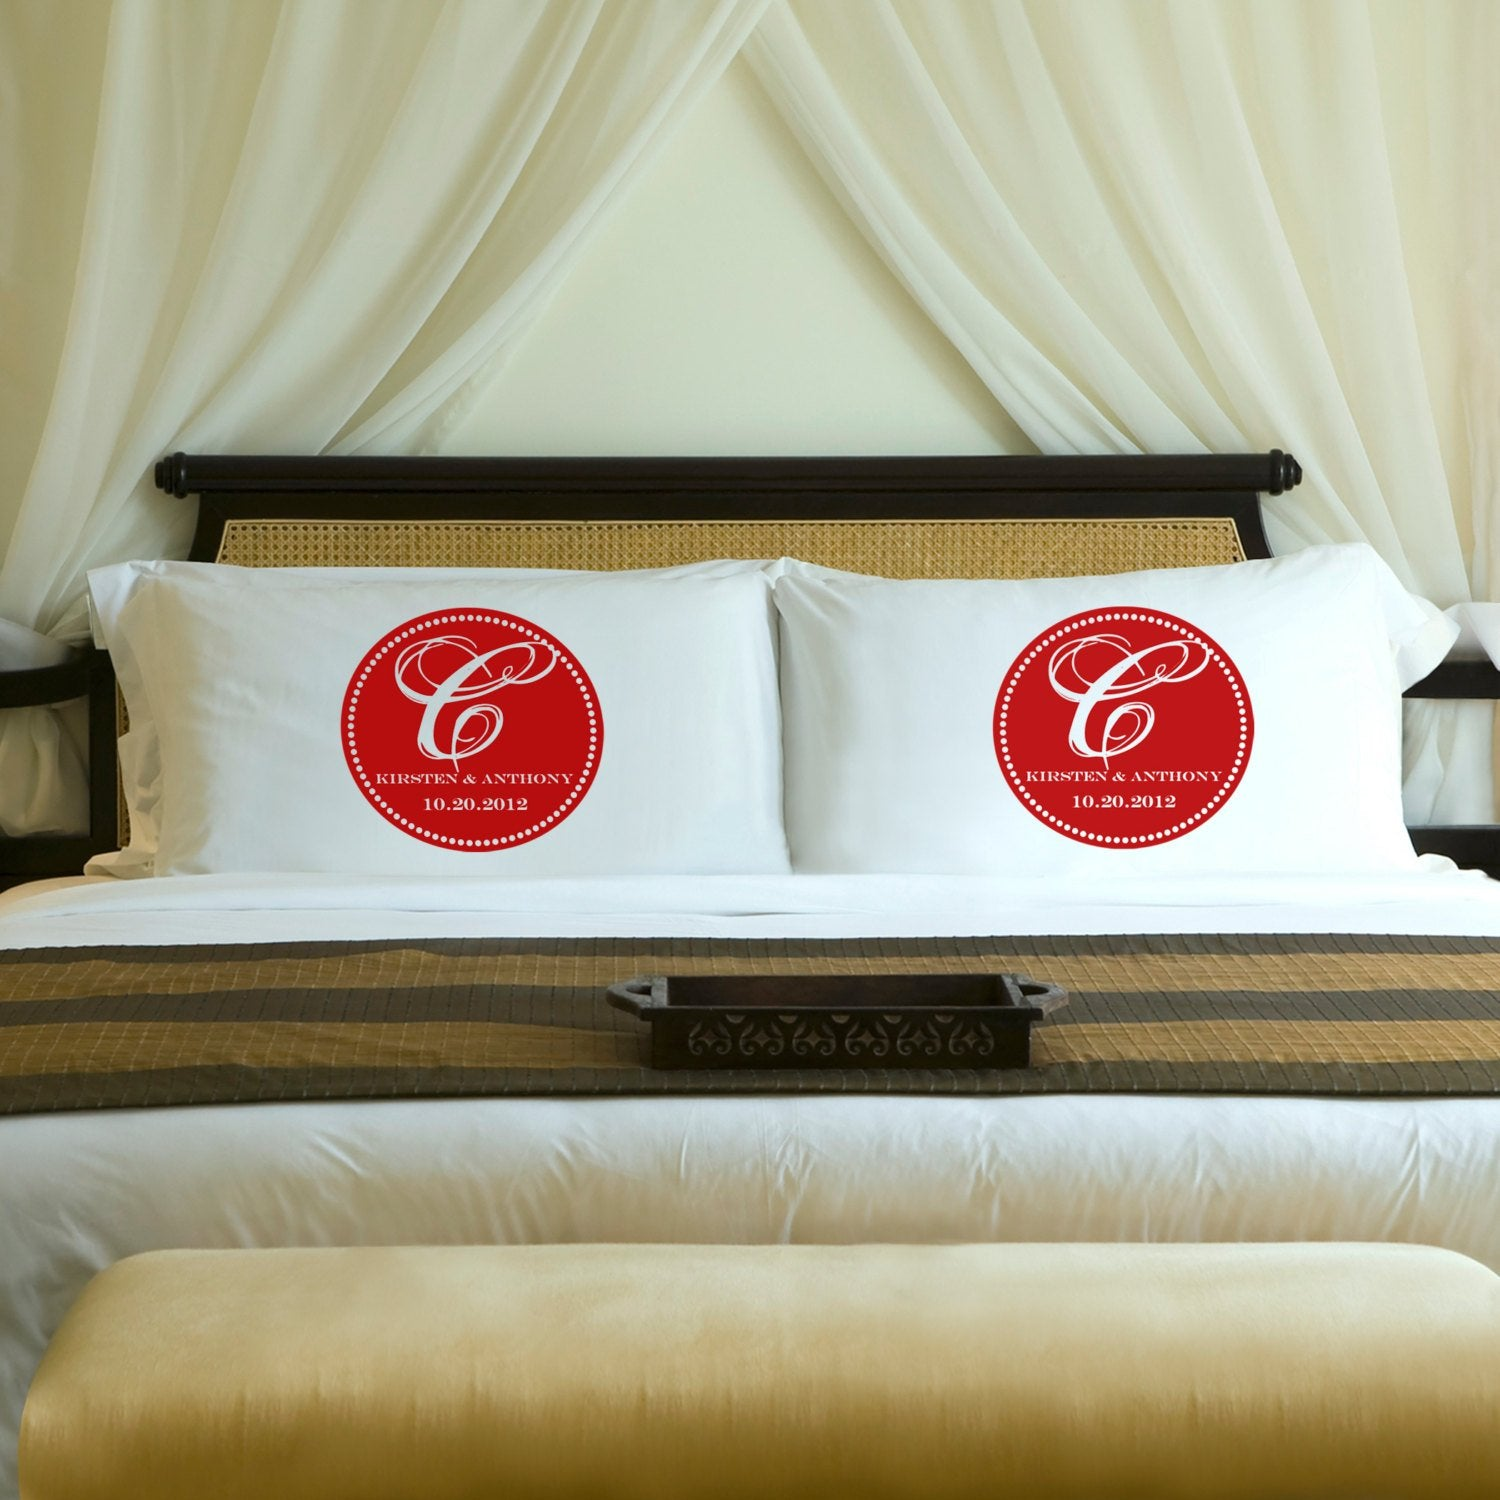 Love's in the air on Personalized Pillows Cases for couples at PinkBlush!